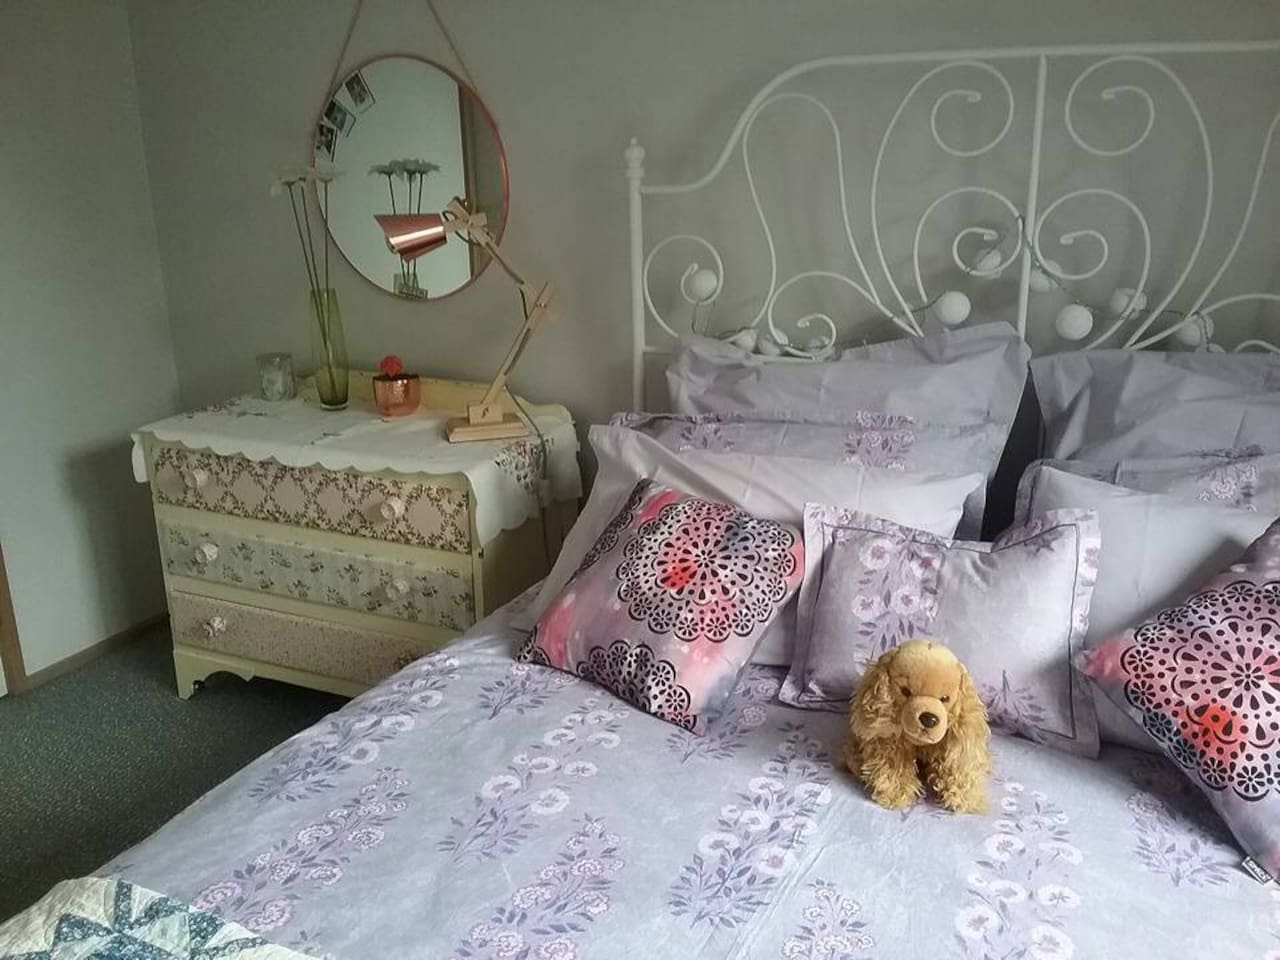 Your room is clean and comfortable. The bed has a new mattress and high quality bed linen. Toiletries and towels are provided.